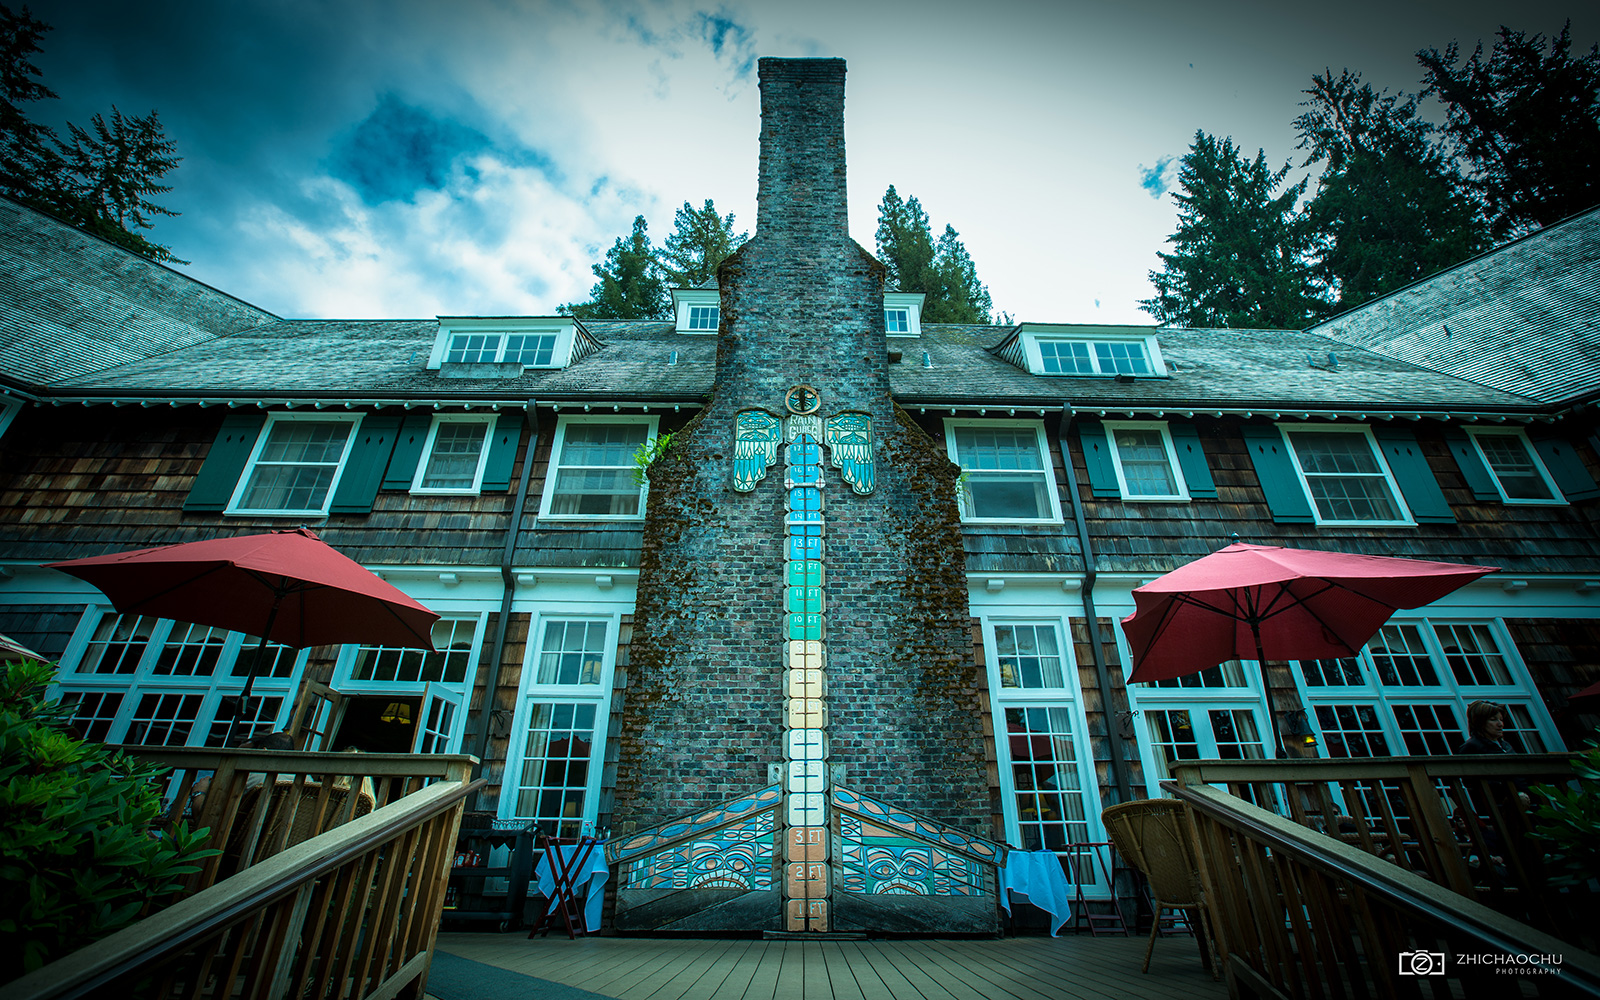 Wish to stay at Lake Quinault Lodge.